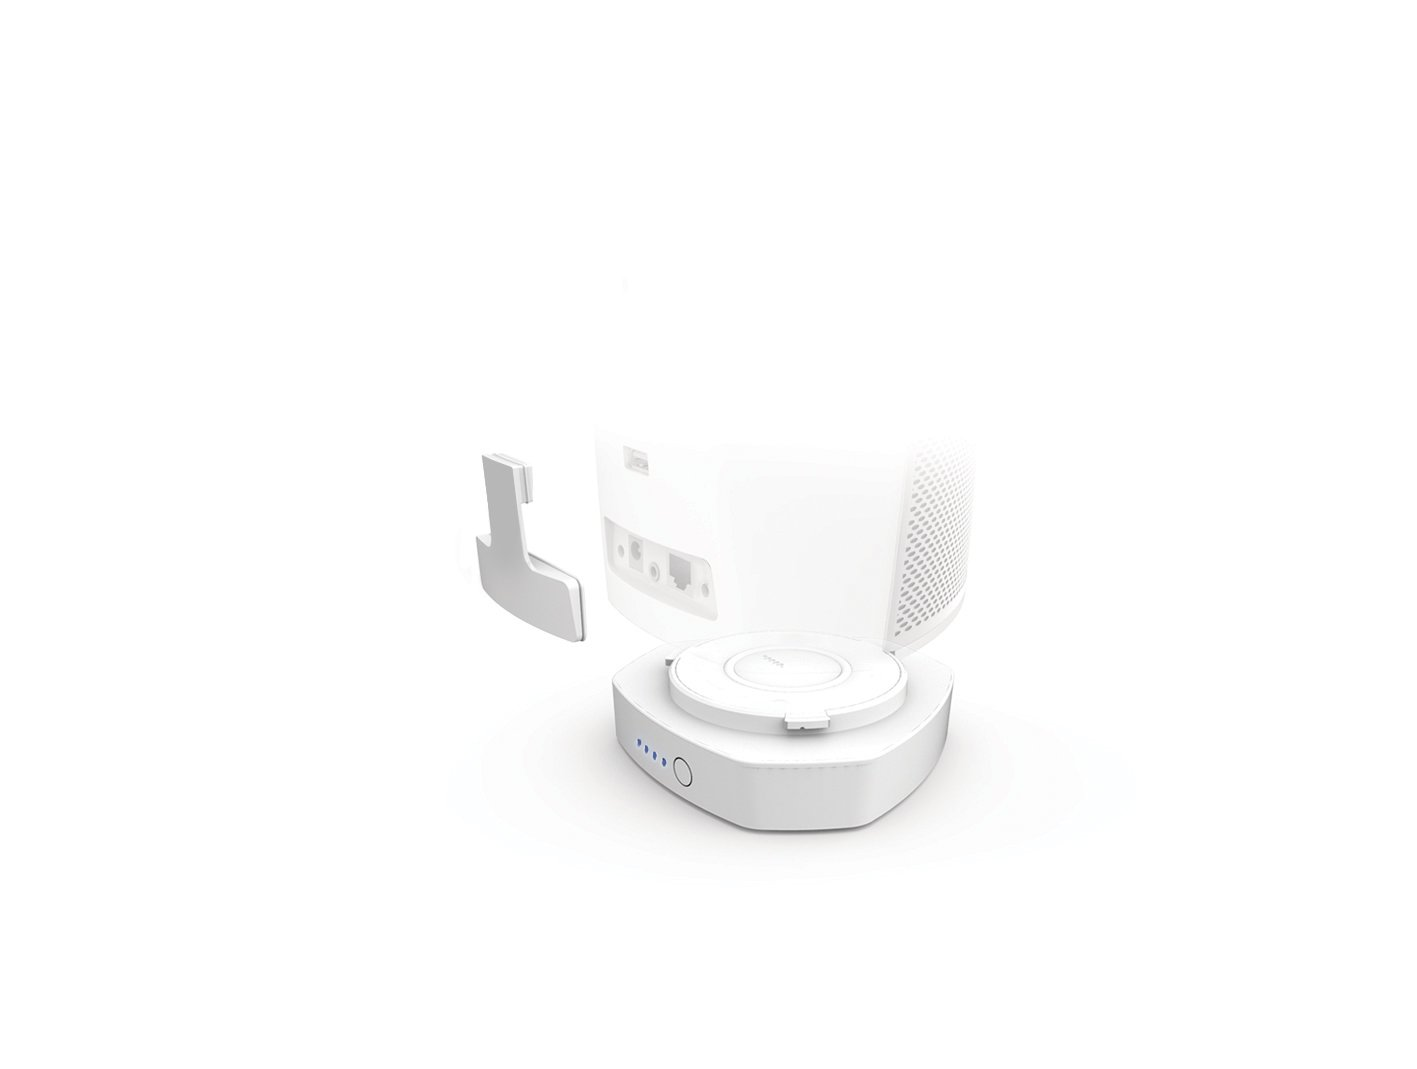 Denon HEOS1GOPACKHS2WT GO Pack Wireless Audio System Adapter New Version White by Denon (Image #4)